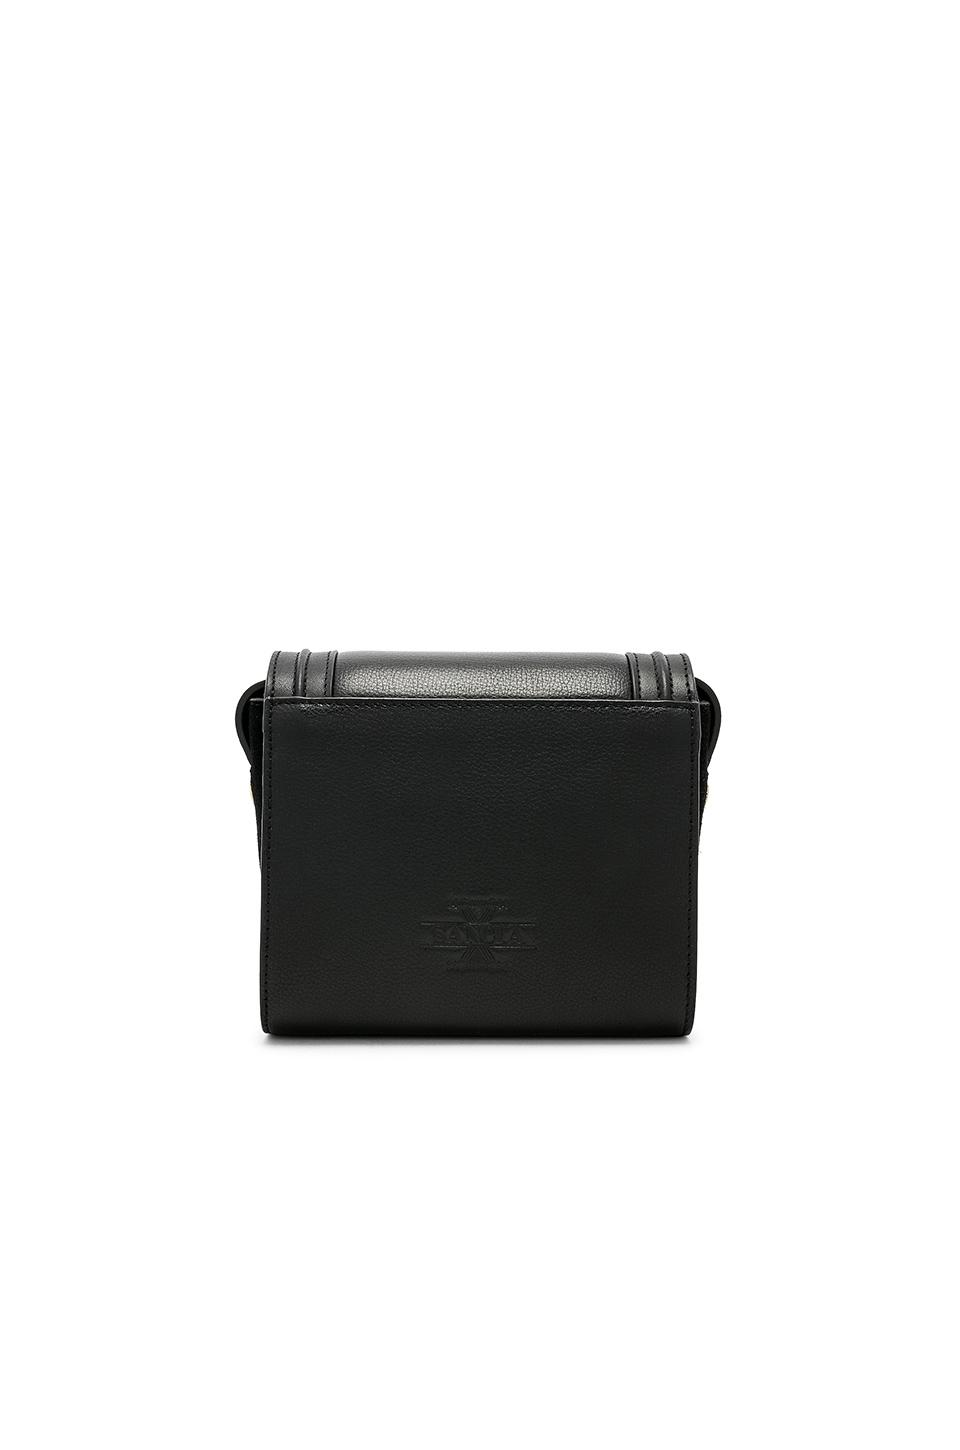 Pre Order For Sale Top Quality Sale Online Statement Clutch - SELECTIONSTYLE by VIDA VIDA Prices Online 2Hk7d